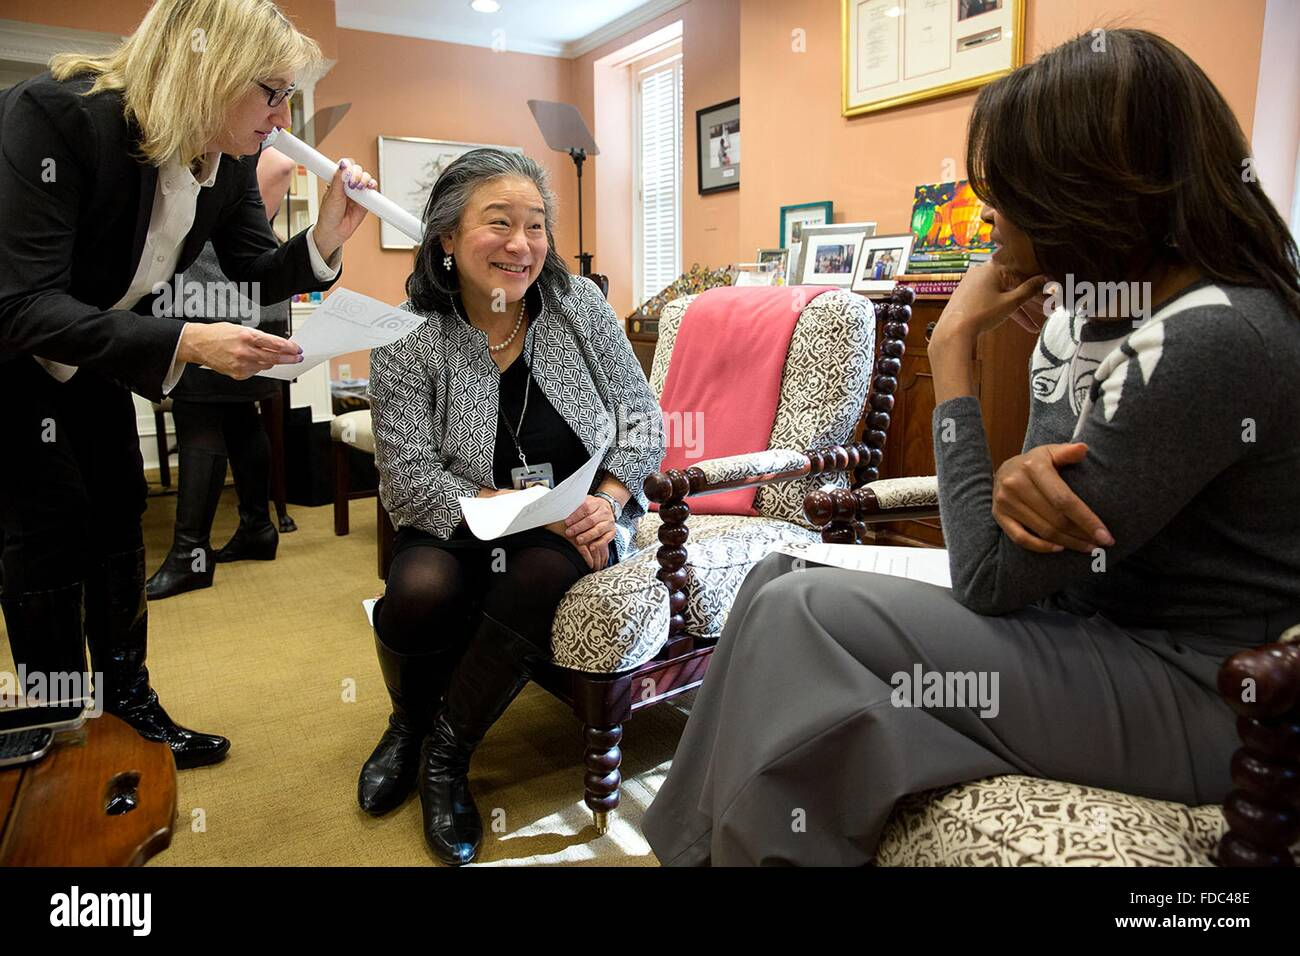 U.S. First Lady Michelle Obama, Senior Advisor Melissa Winter and Chief of Staff Tina Tchen participate in mental - Stock Image